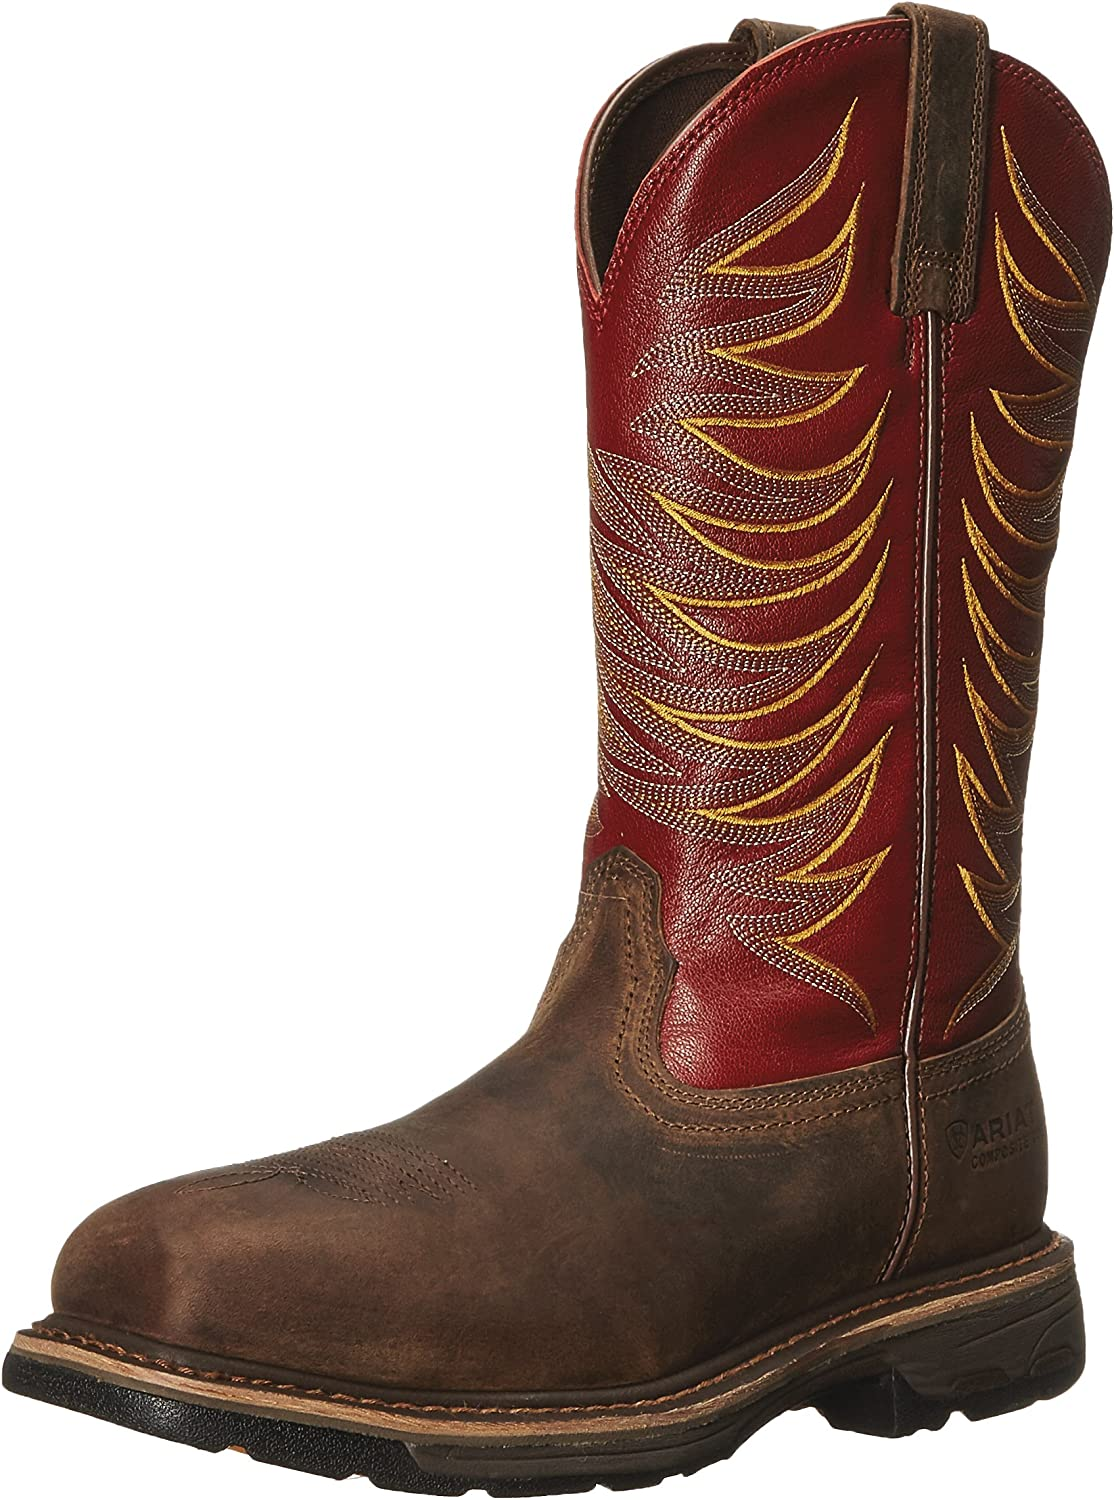 Ariat Men's Workhog Wide Square Toe Tall II Compositie Toe Distressed Boot